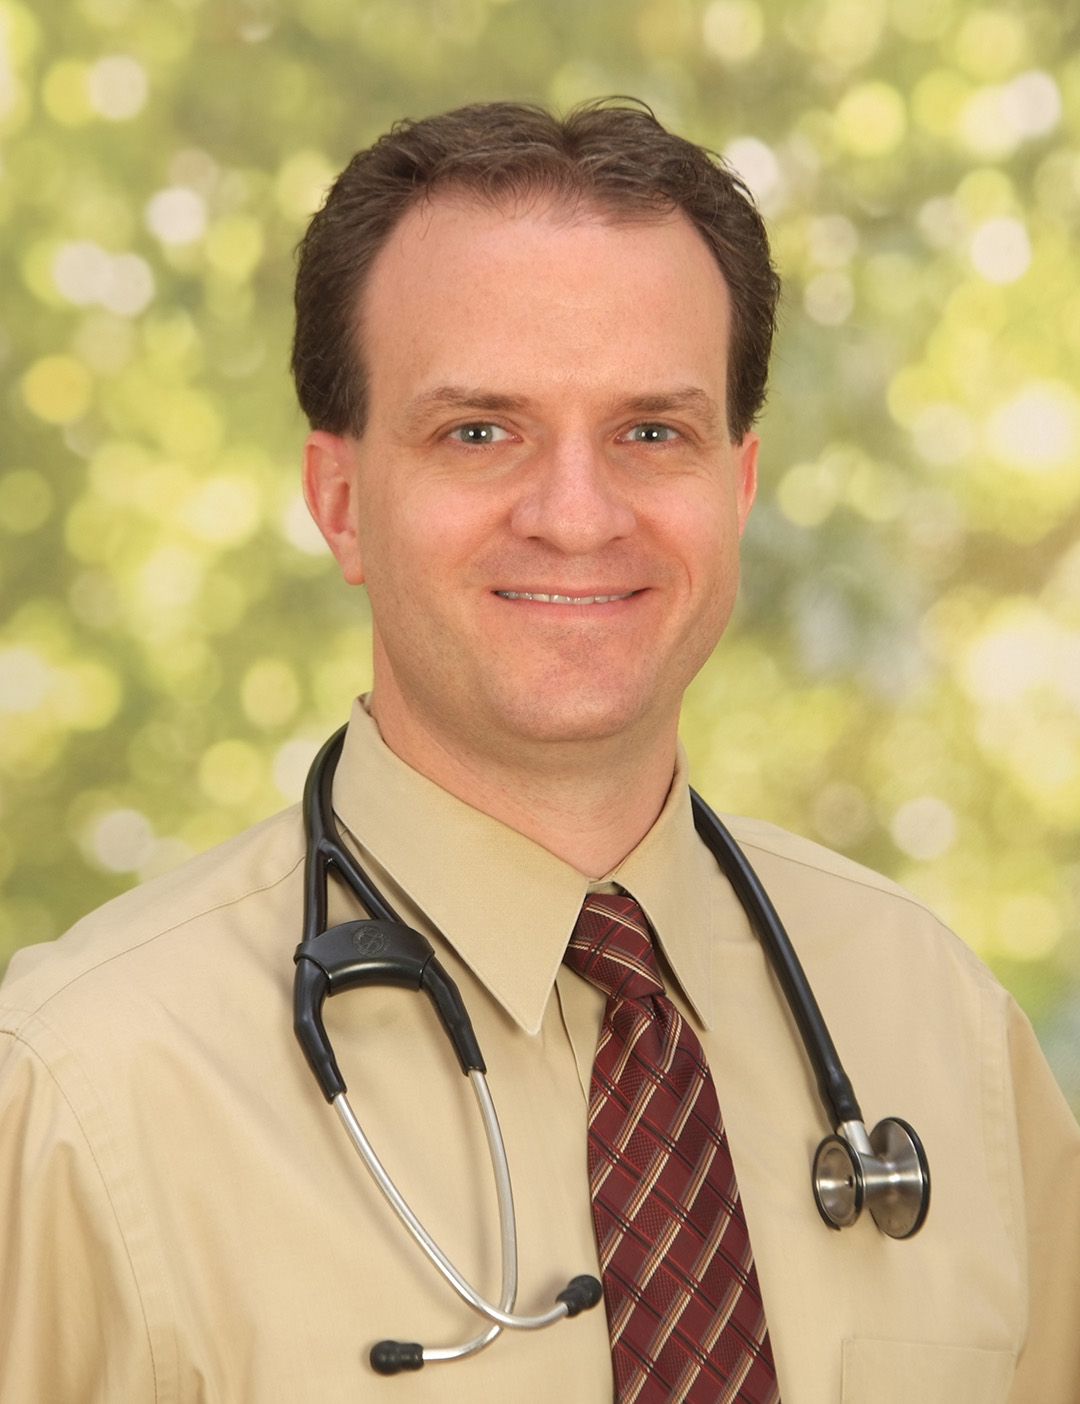 Chad Savage, M.D.